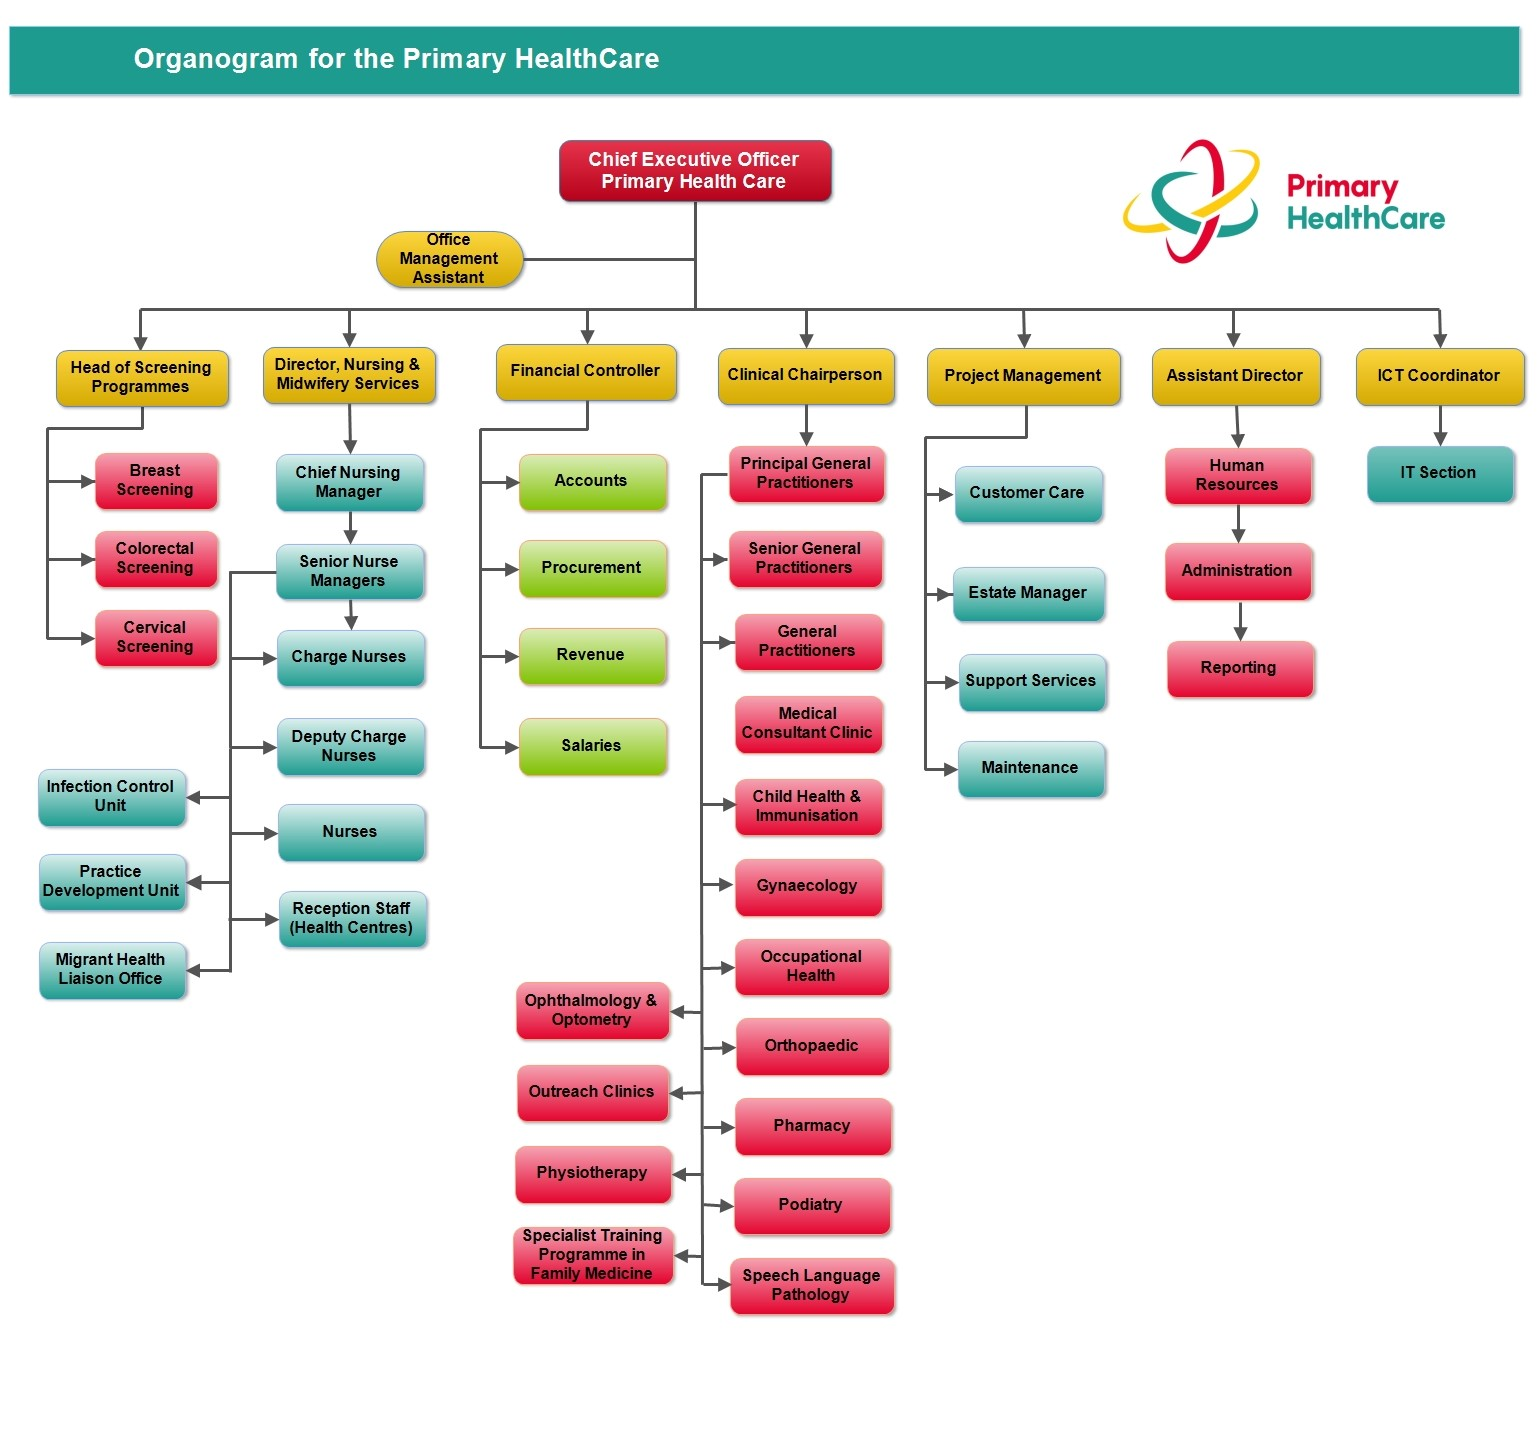 Organogram for the Primary HealthCare